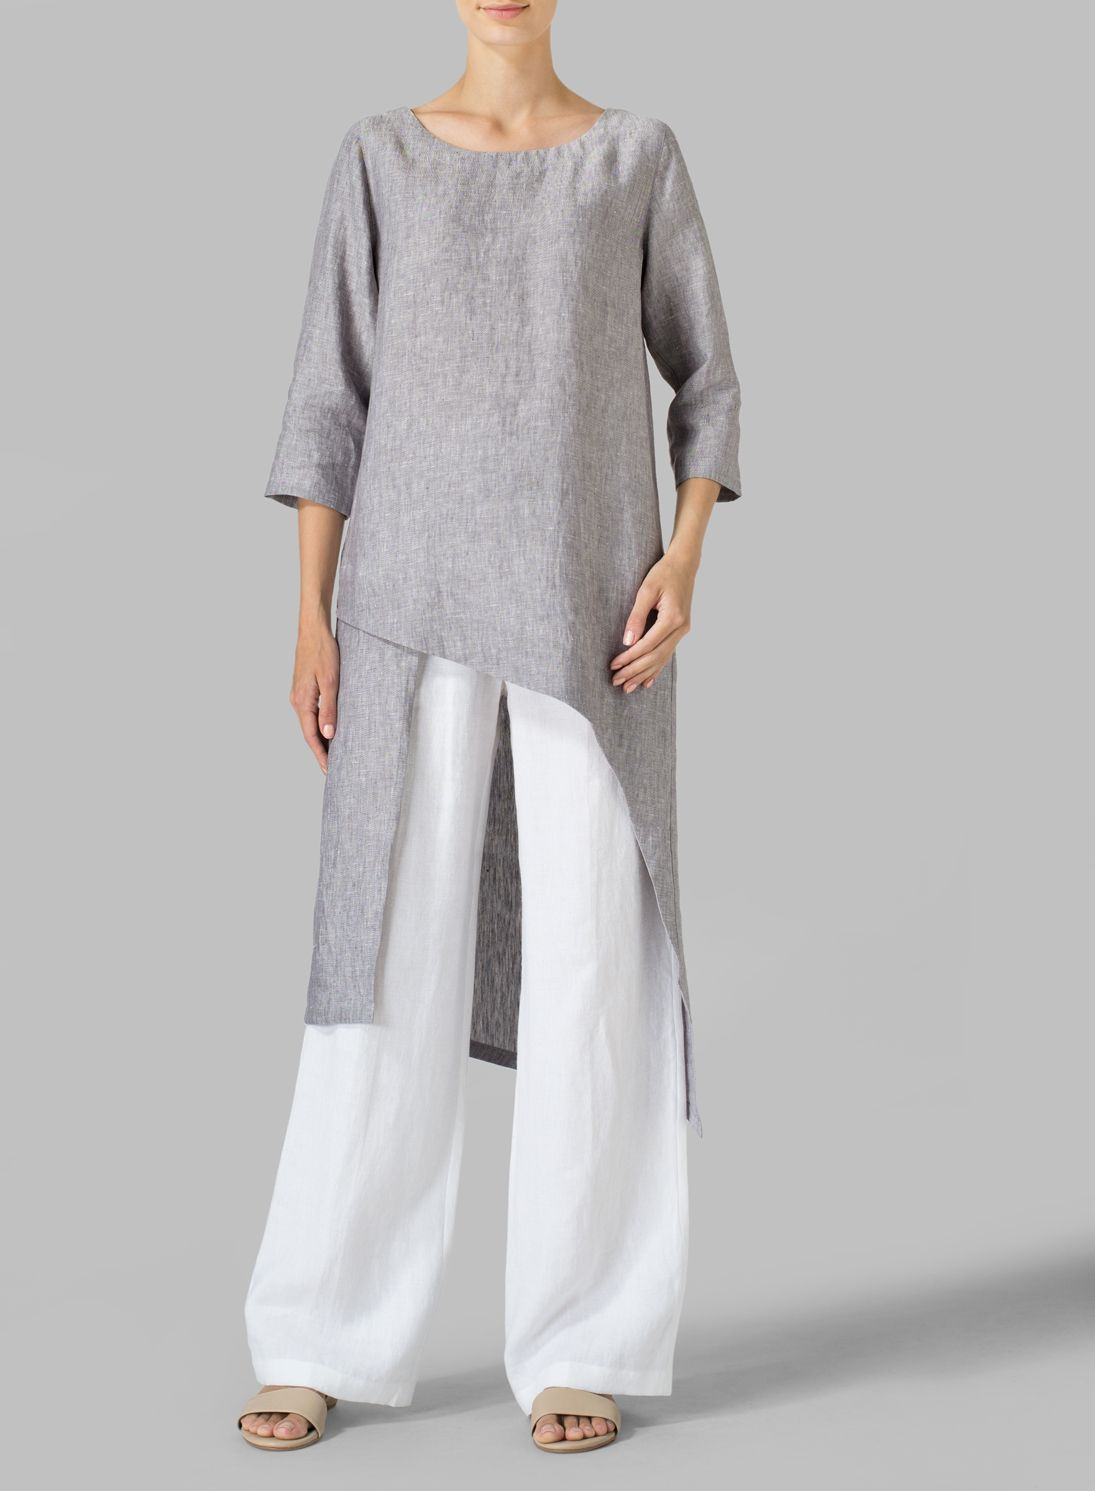 Linen Asymmetrical Tunic Fluttery Romantic And Displaying The Pp Palazo Kulot Sj0015 Refined Tailoring Of Vivid Cascading Detail For Graceful Movement With Each Step